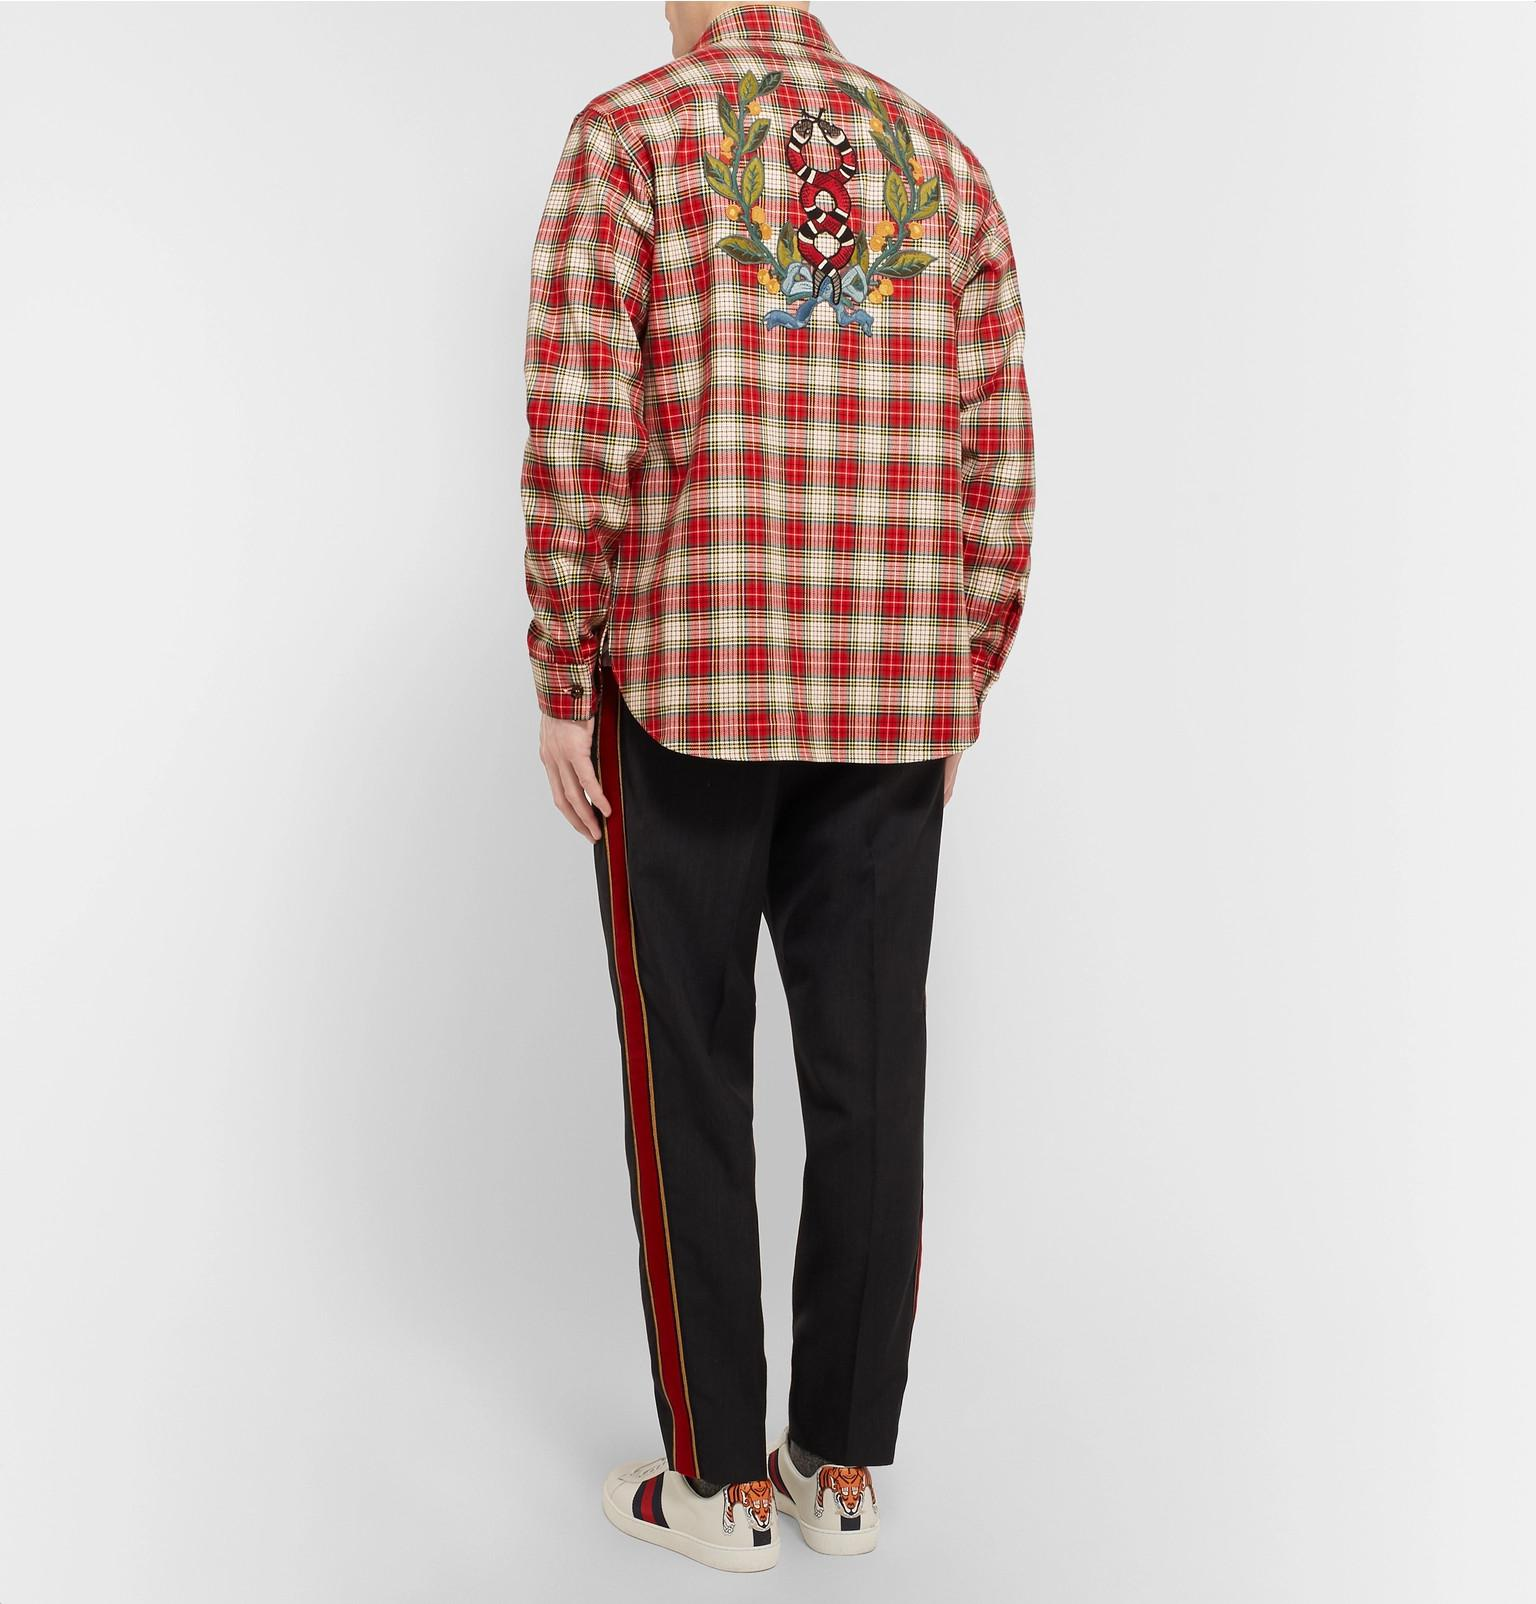 439c76666 Gucci - Embroidered Checked Cotton-twill Shirt for Men - Lyst. View  fullscreen